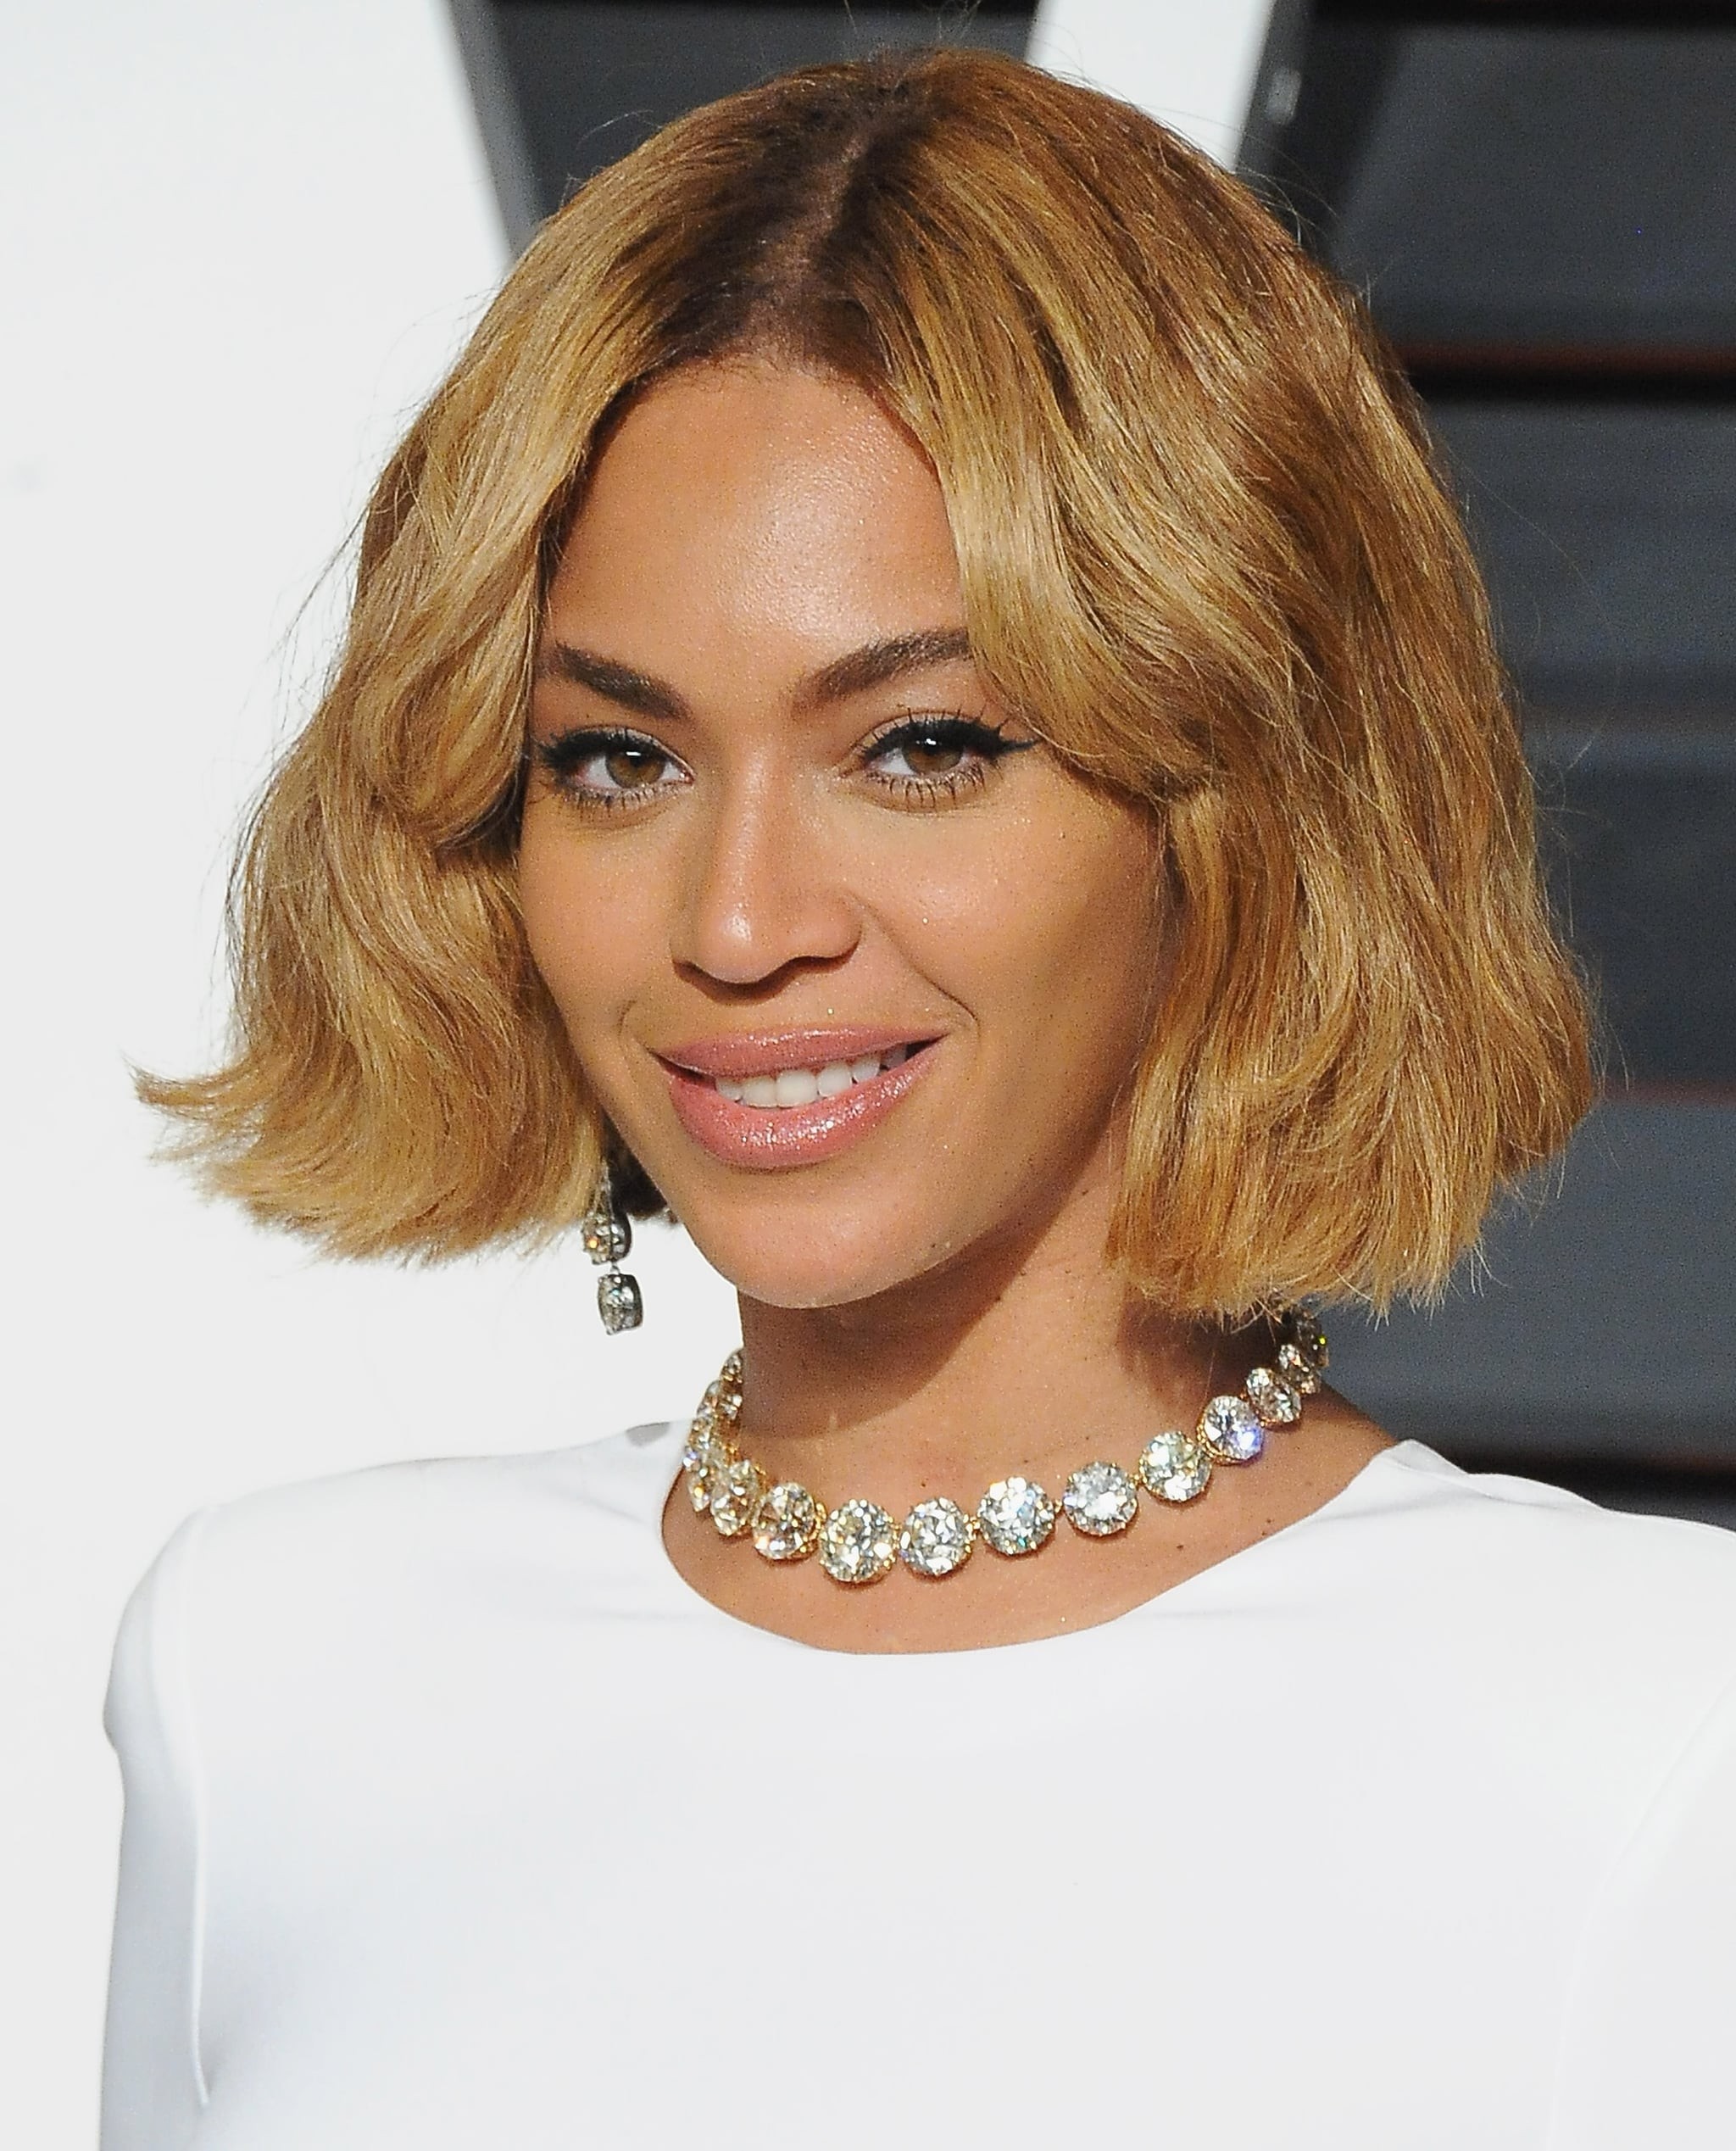 Beyonce's Unretouched L'Oreal Photos | POPSUGAR Beauty